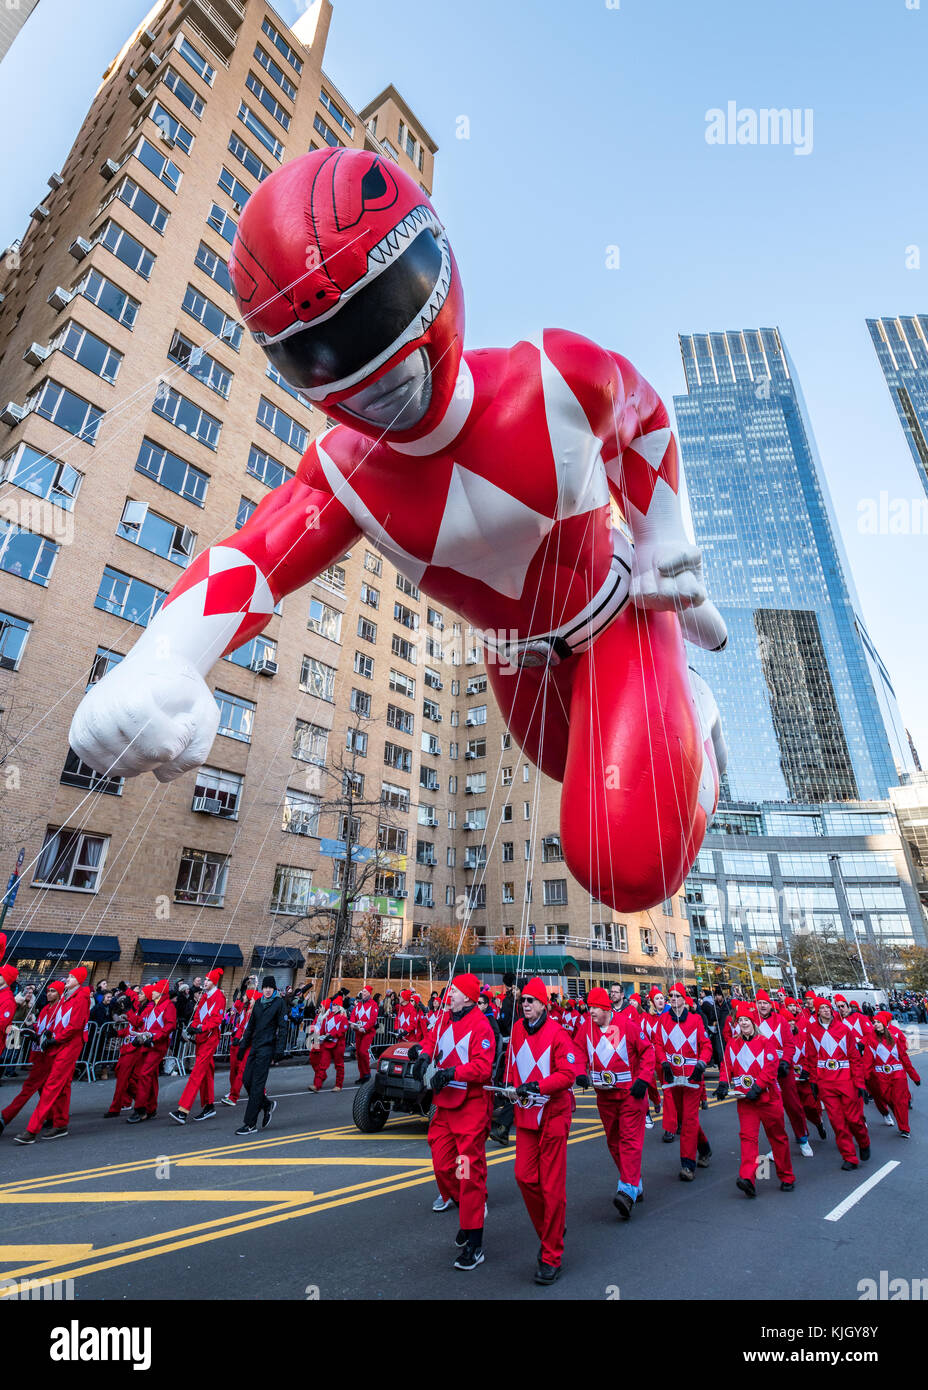 New York, USA, 23. Nov 2017. New York, USA, ein Ballon der Roten mighty Morphin Power Ranger in Central Park West Stockbild